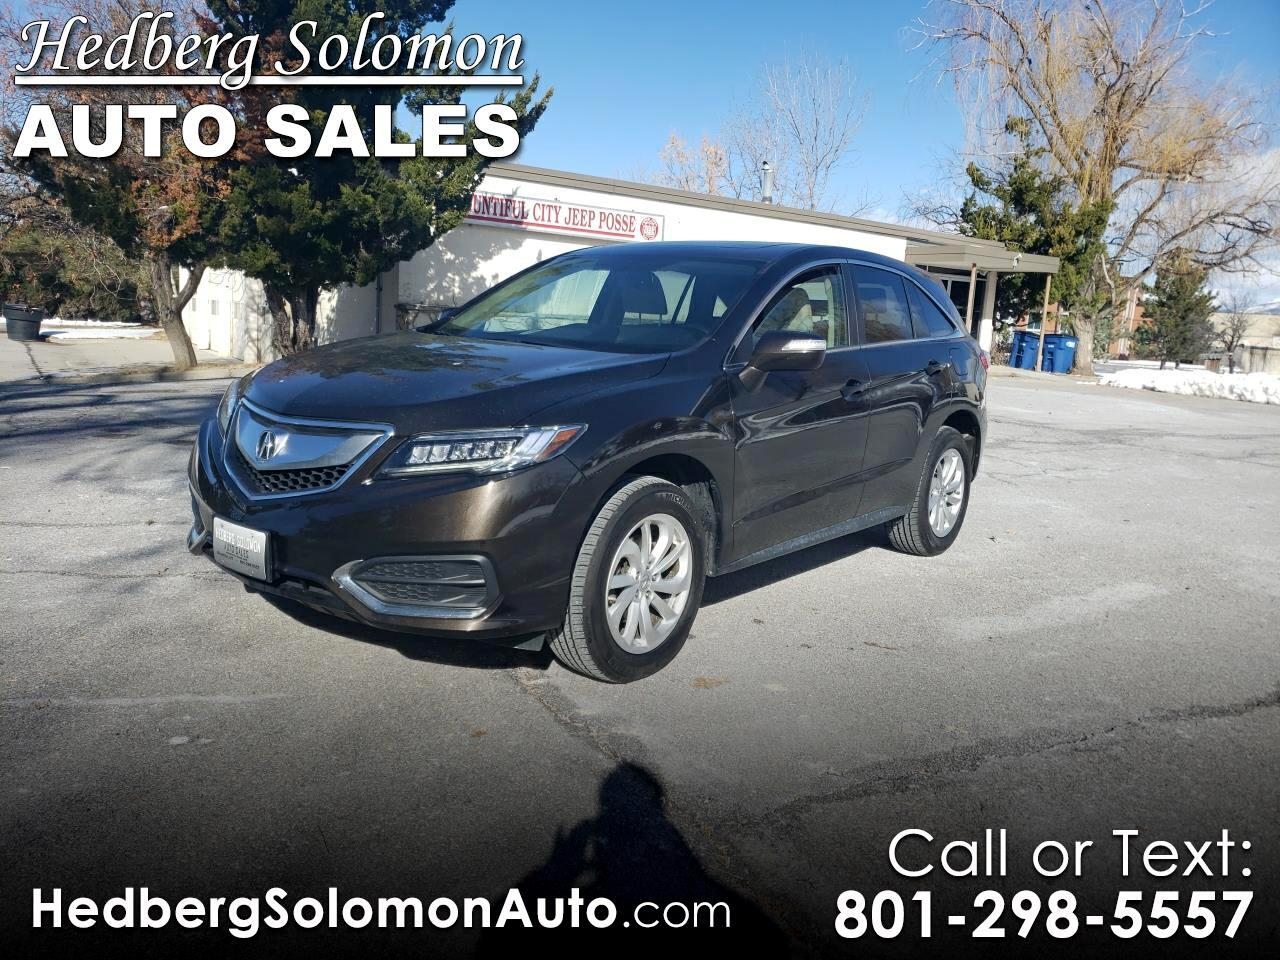 2016 Acura RDX AWD 4dr Tech/AcuraWatch Plus Pkg